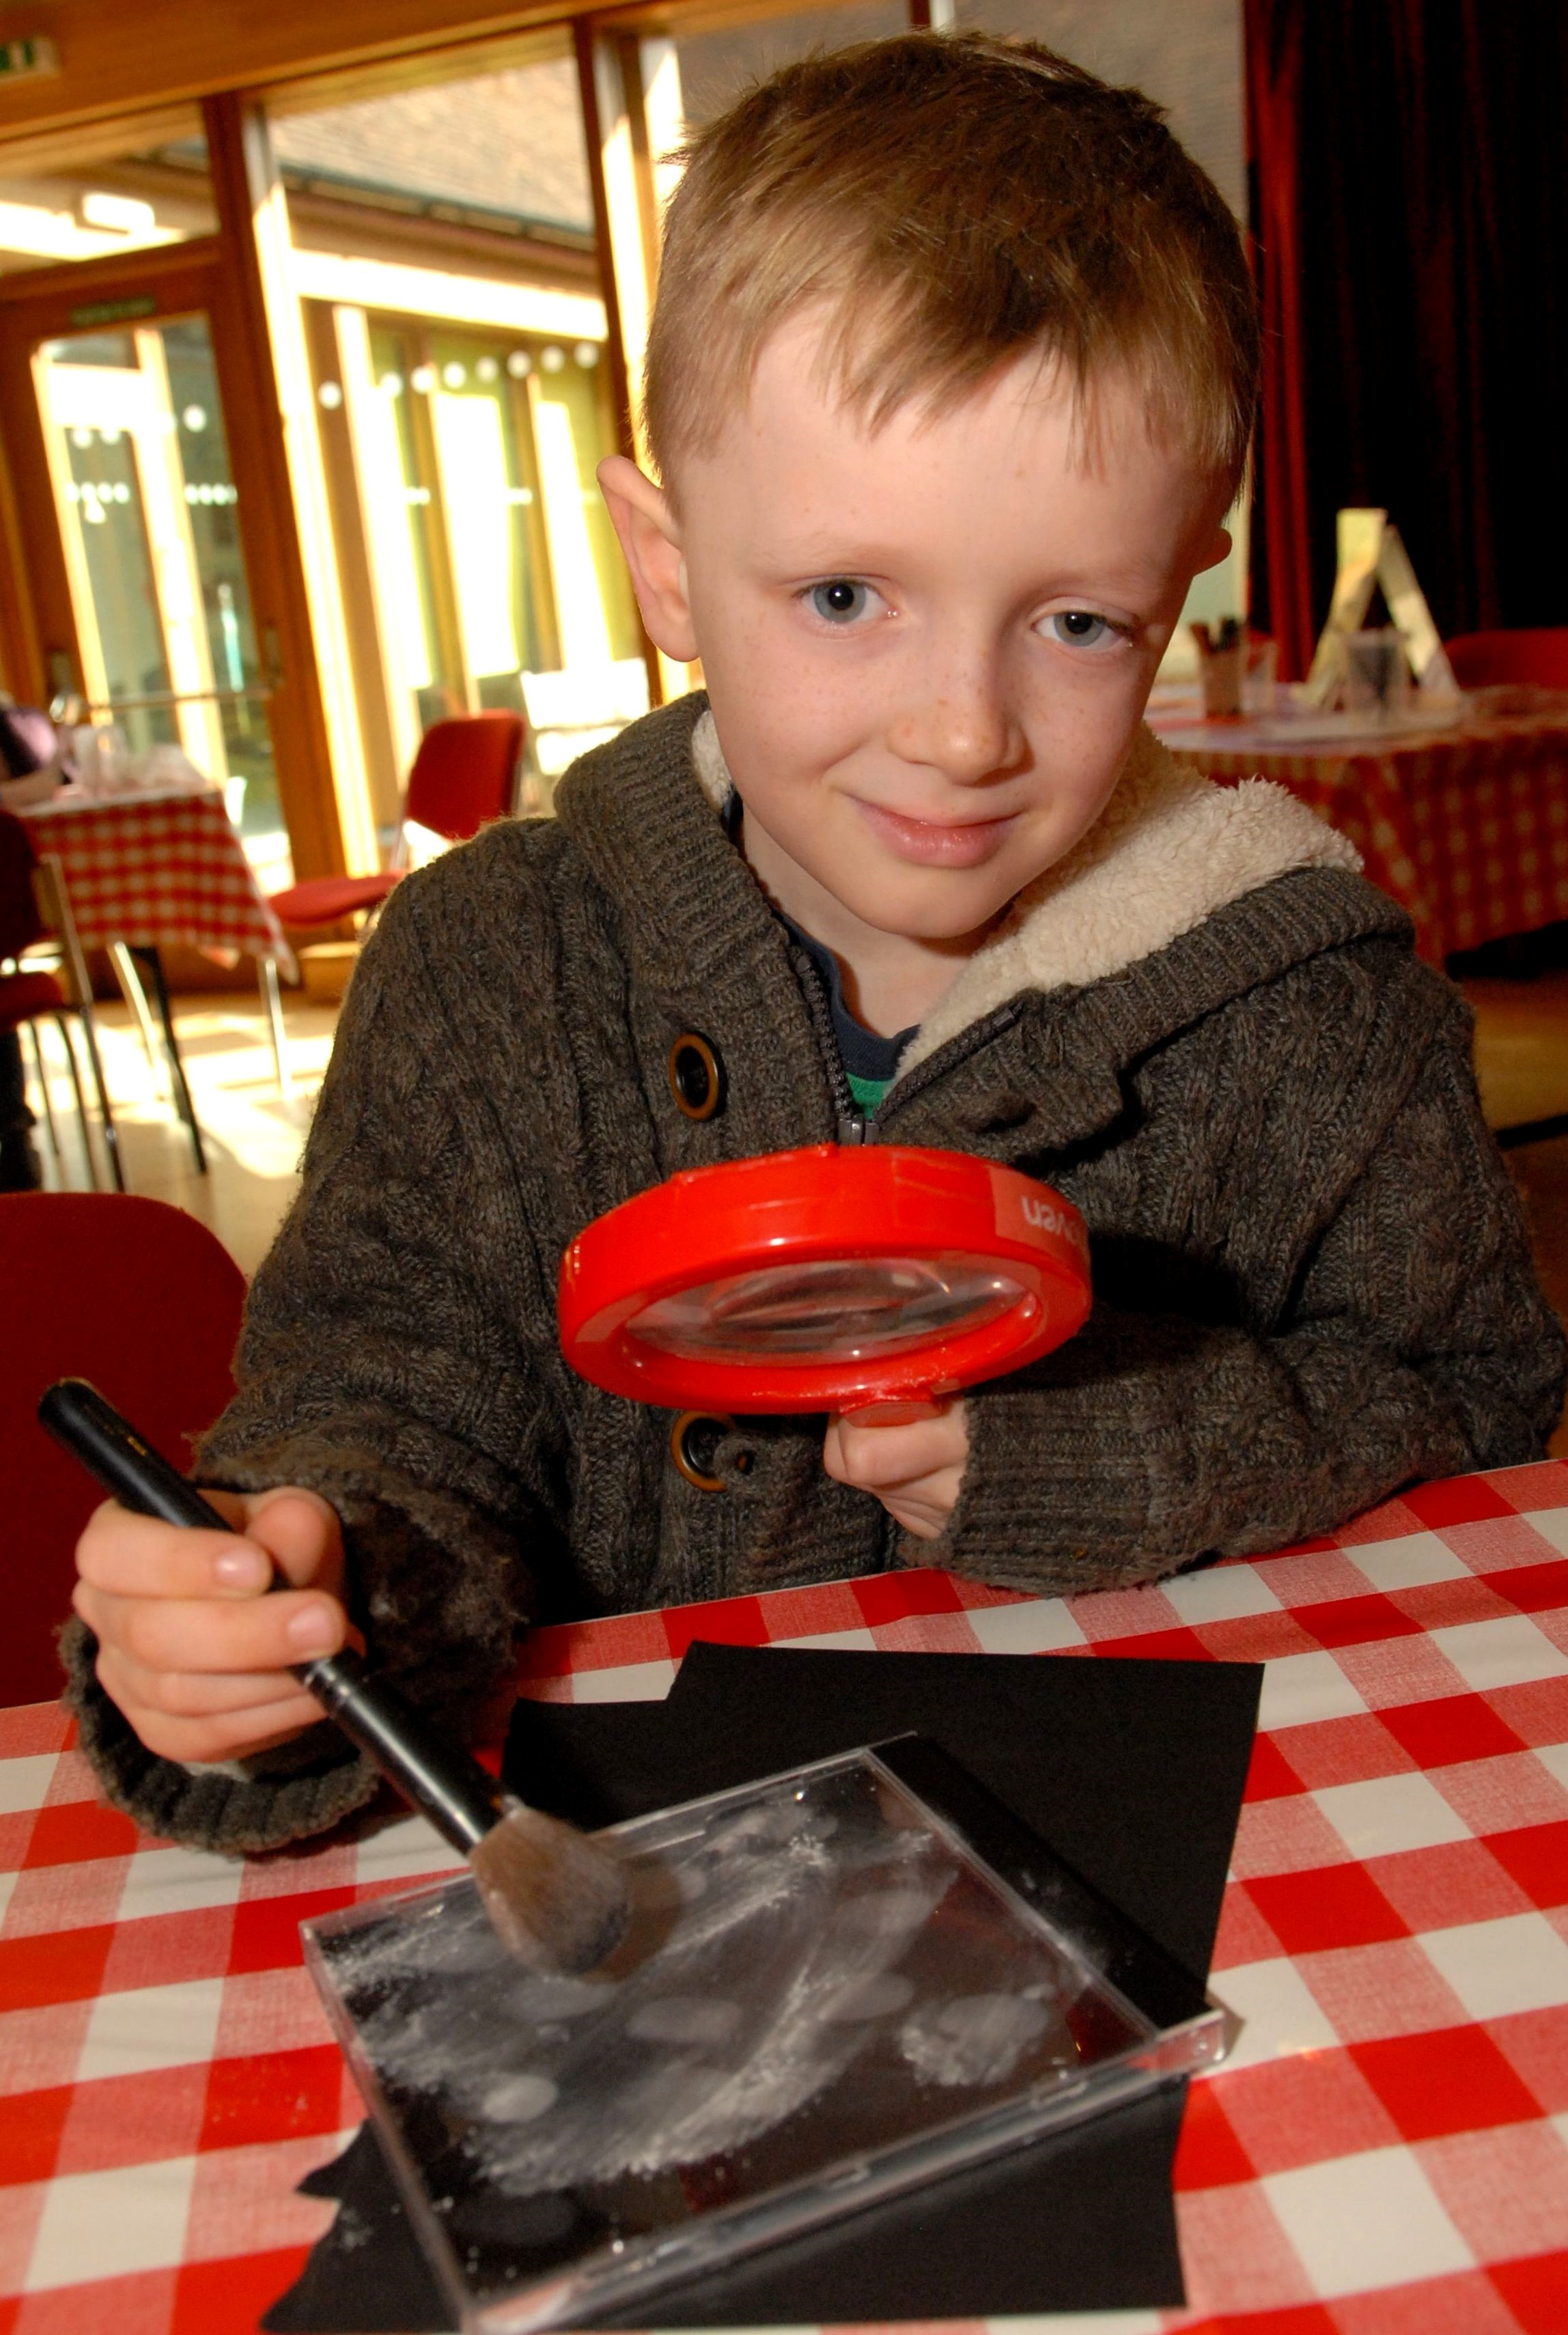 0814525801 Paul Jackson 20.02.14 Lower Broadheath Jacob Hardie, eight, dusts for fingerprints at Elgar Birthplace Museum. (4150822)